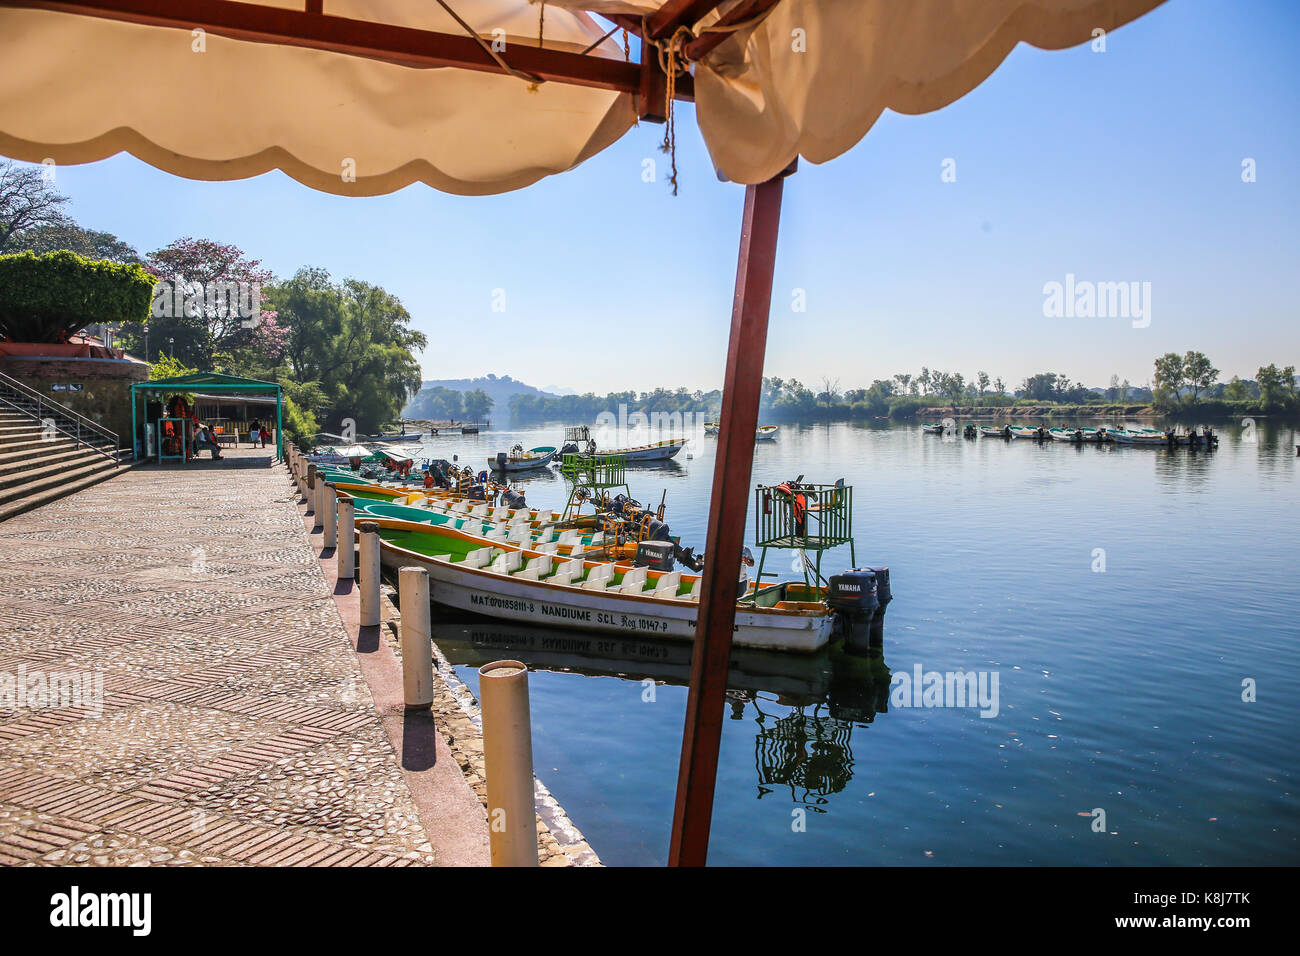 River Boats at Embarcadero, Chiapa de Corzo for Sumidero Canyon - Stock Image